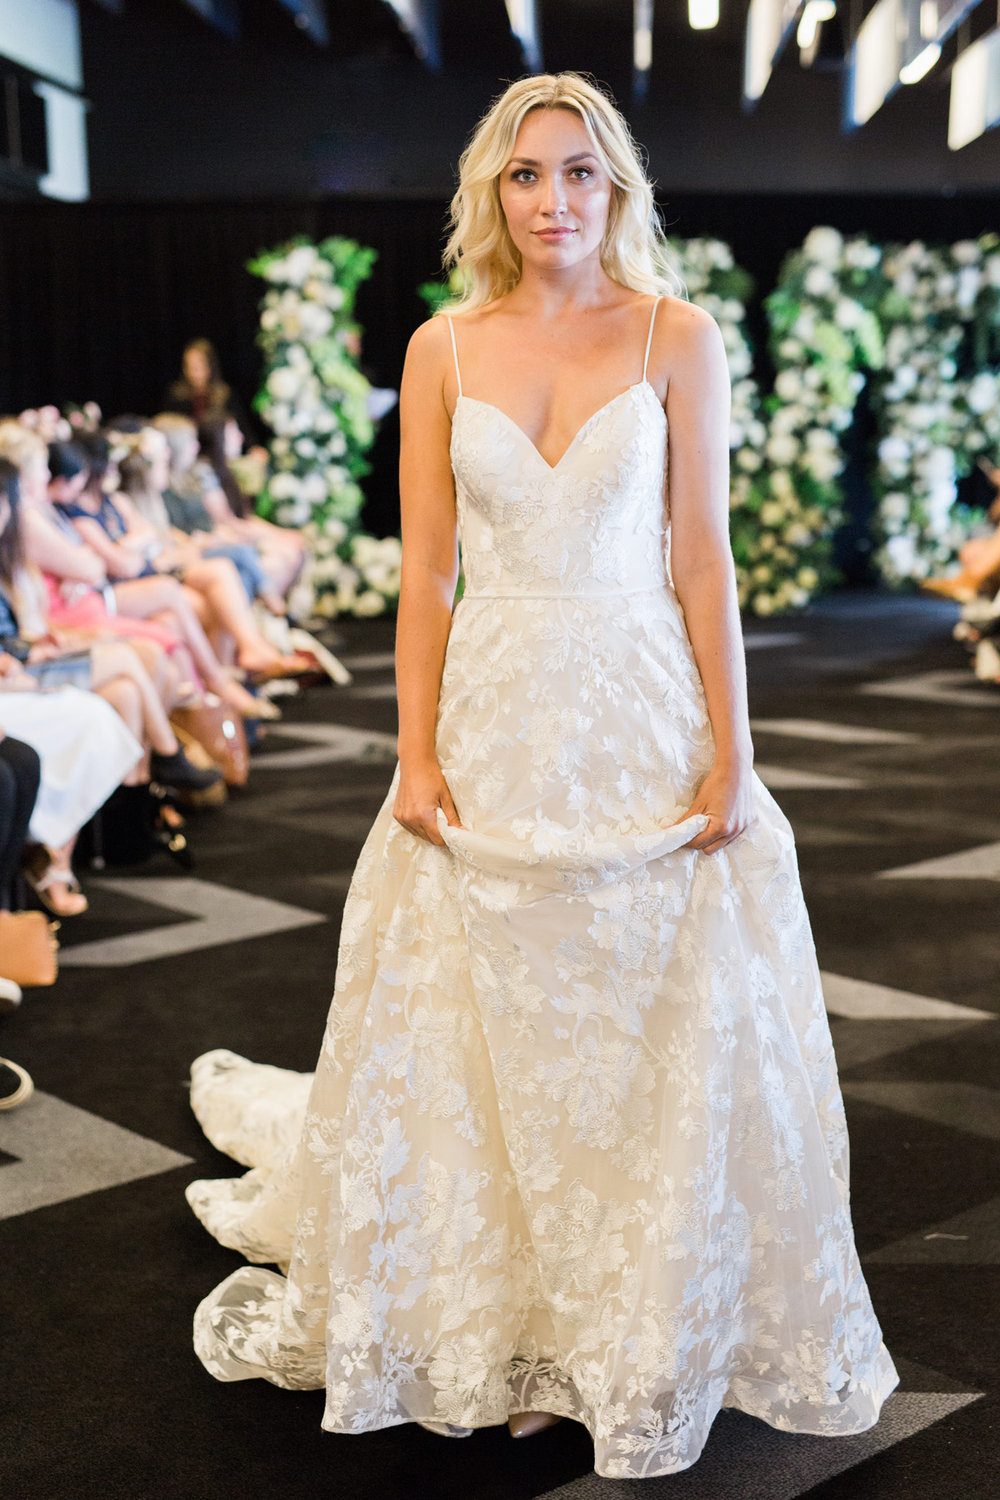 Love-Wedding-Festival-Sydney-Wedding-Gown-Instyle-Bridal-17.jpg